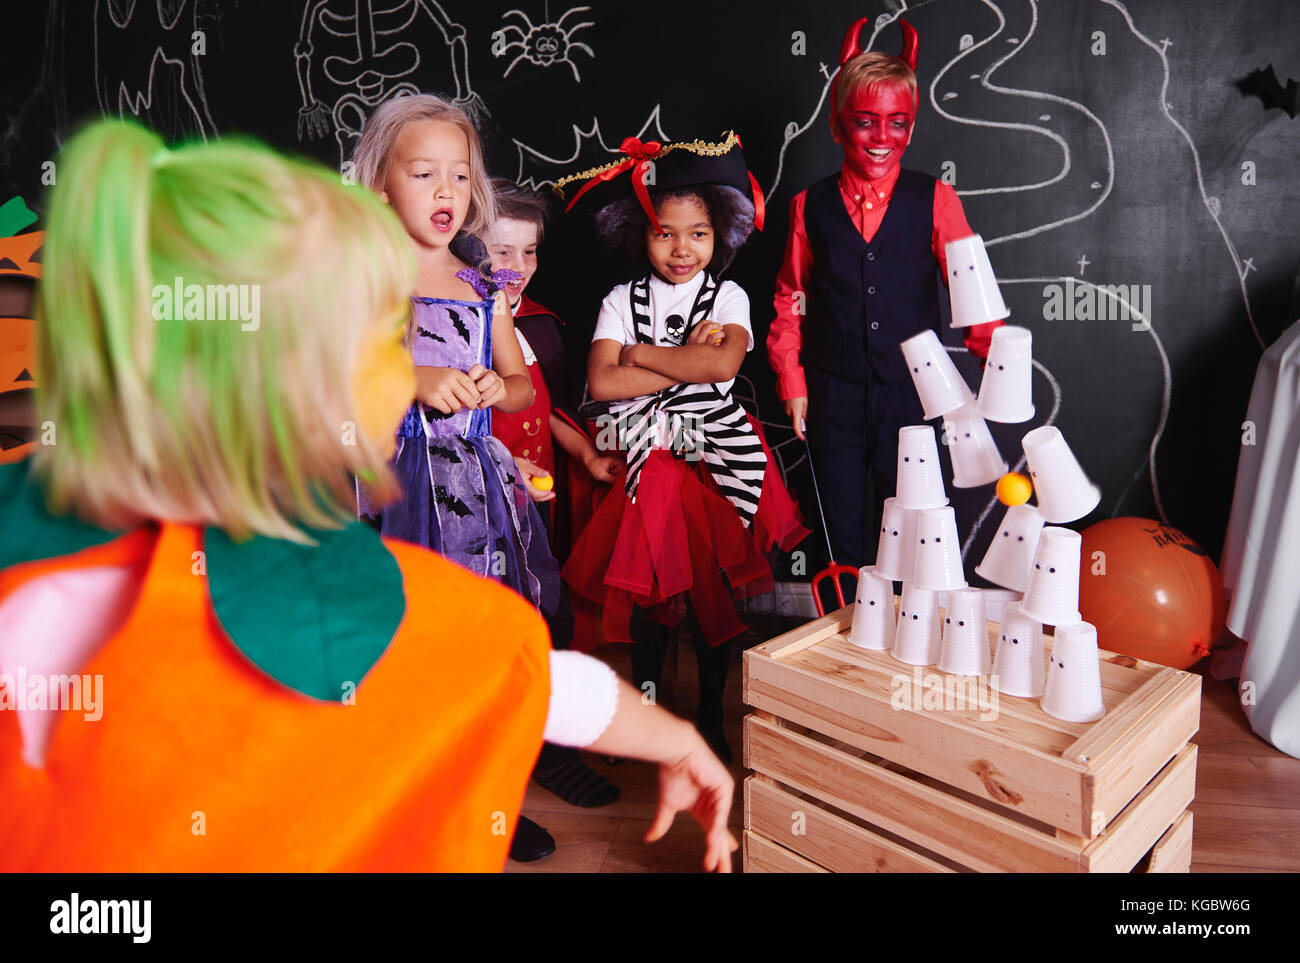 Kids taking part in halloween party - Stock Image